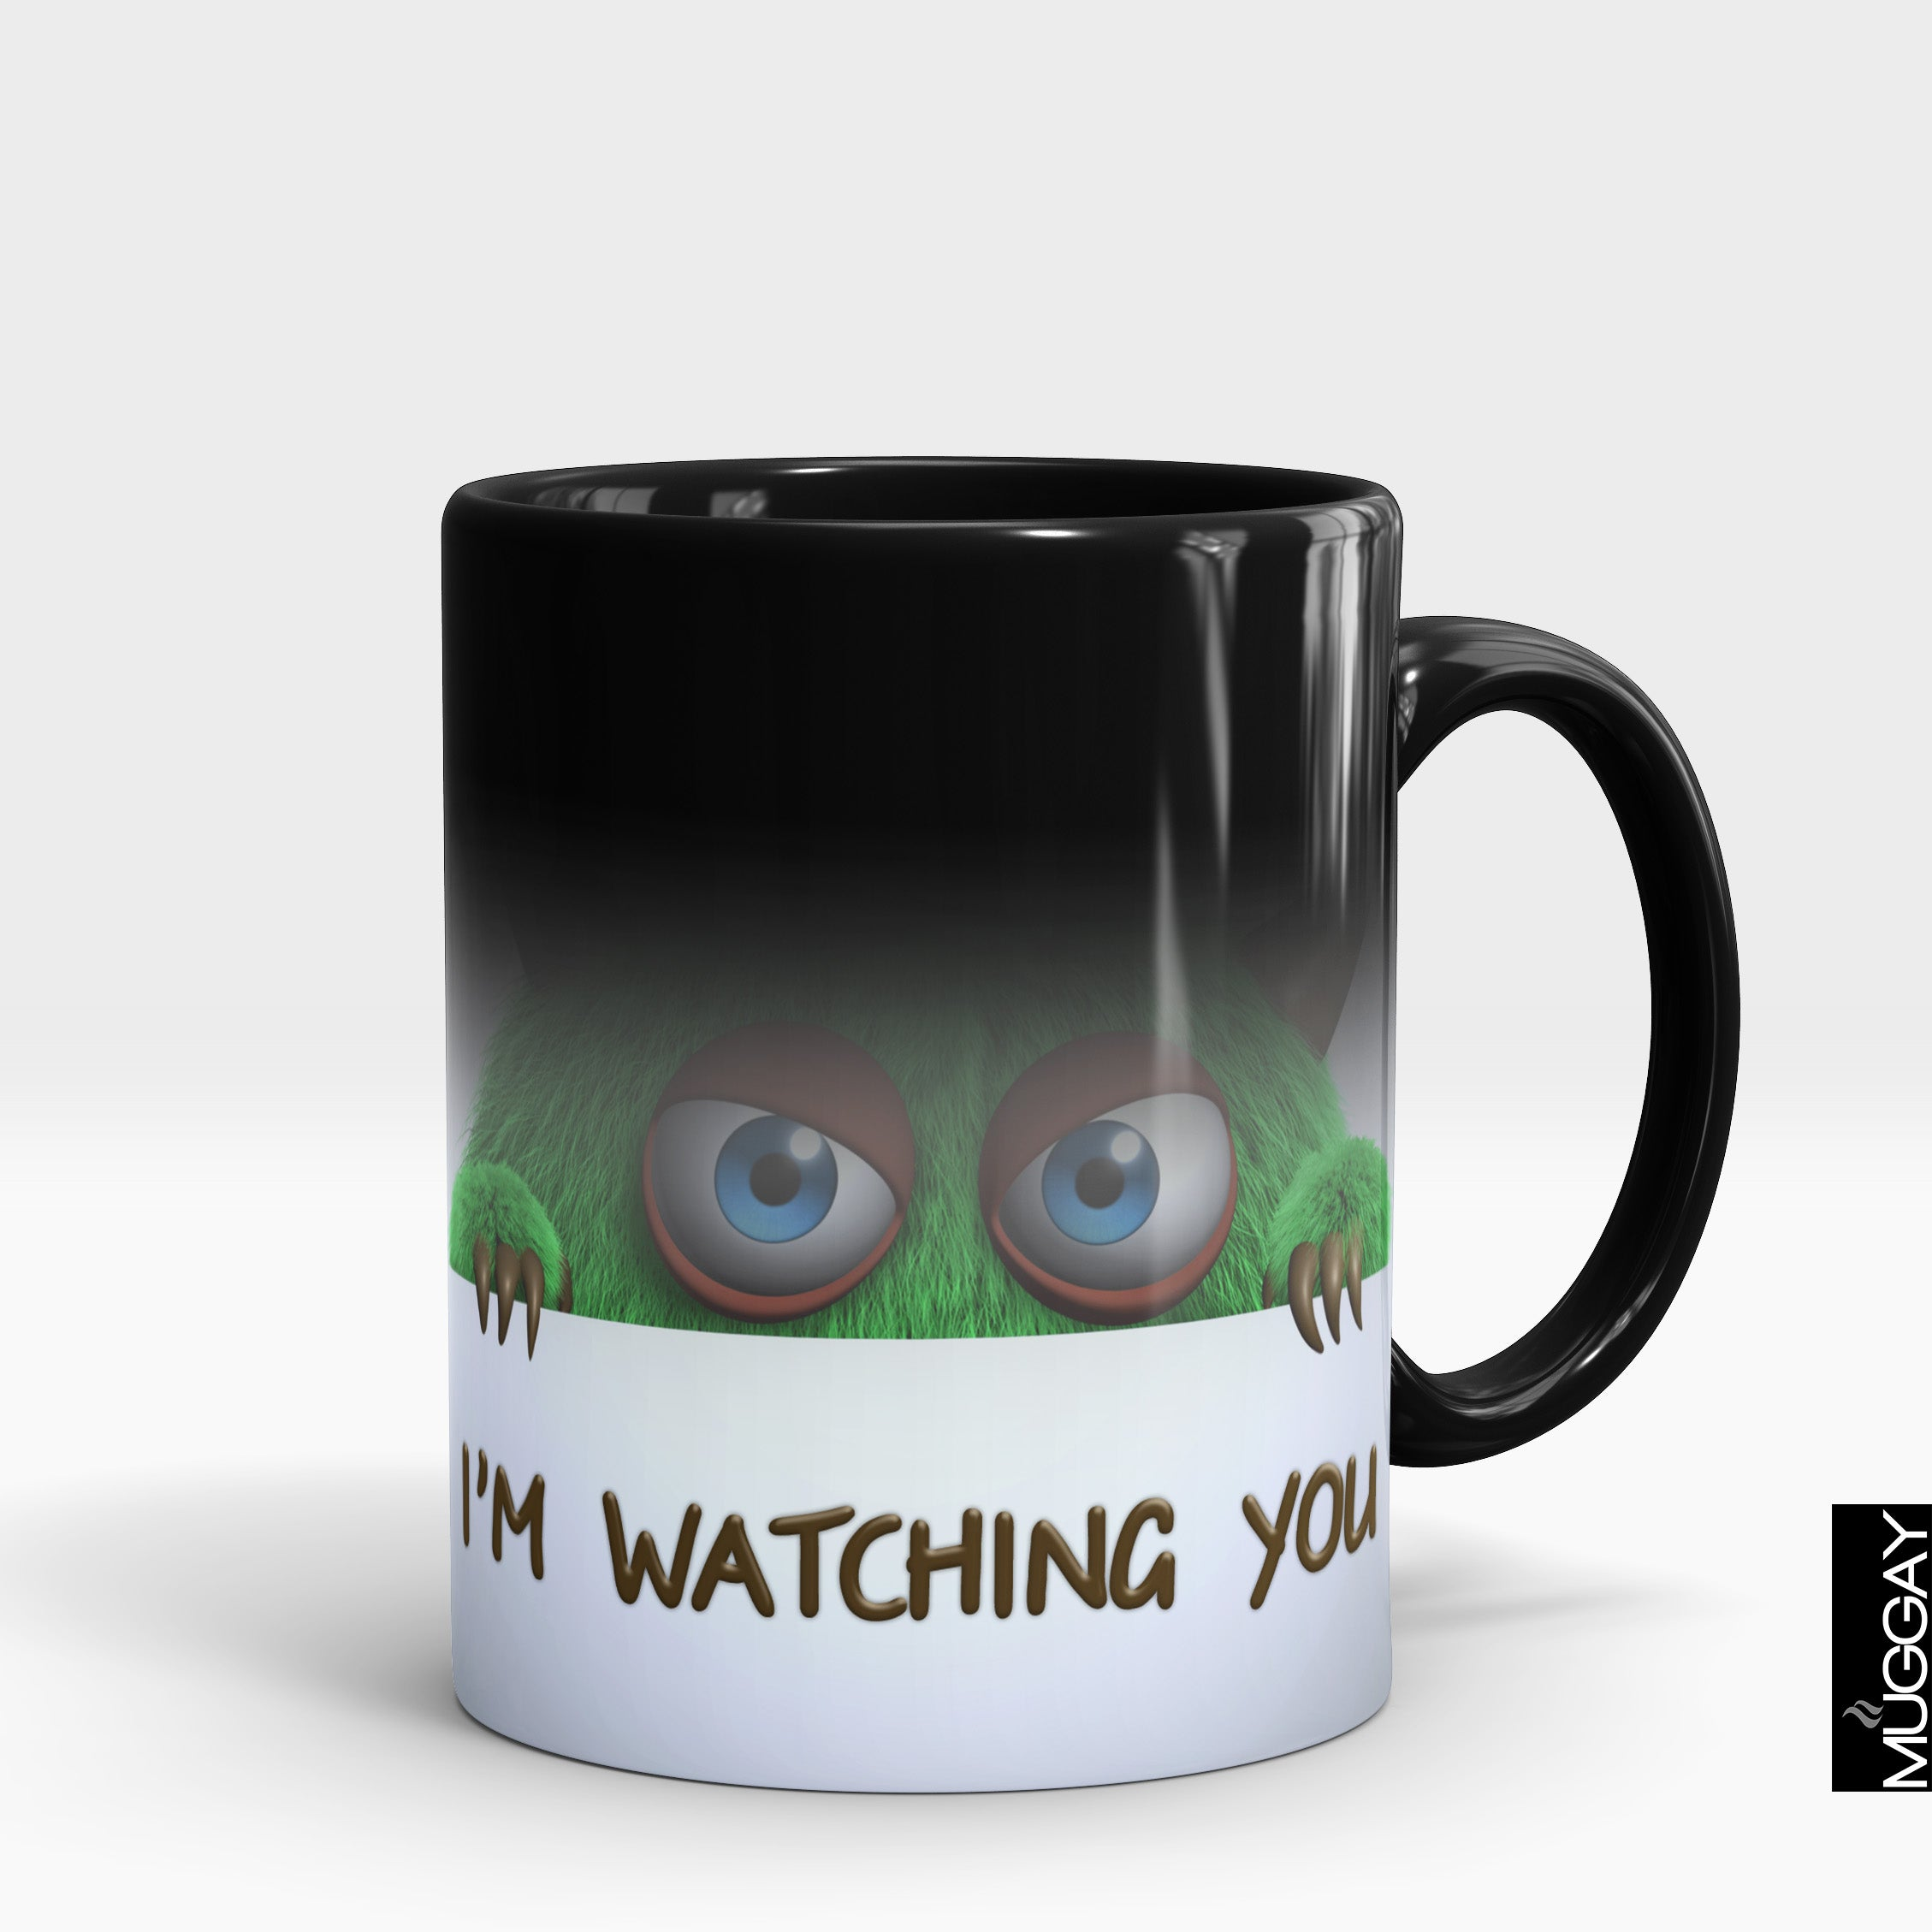 I'm watching you Mug